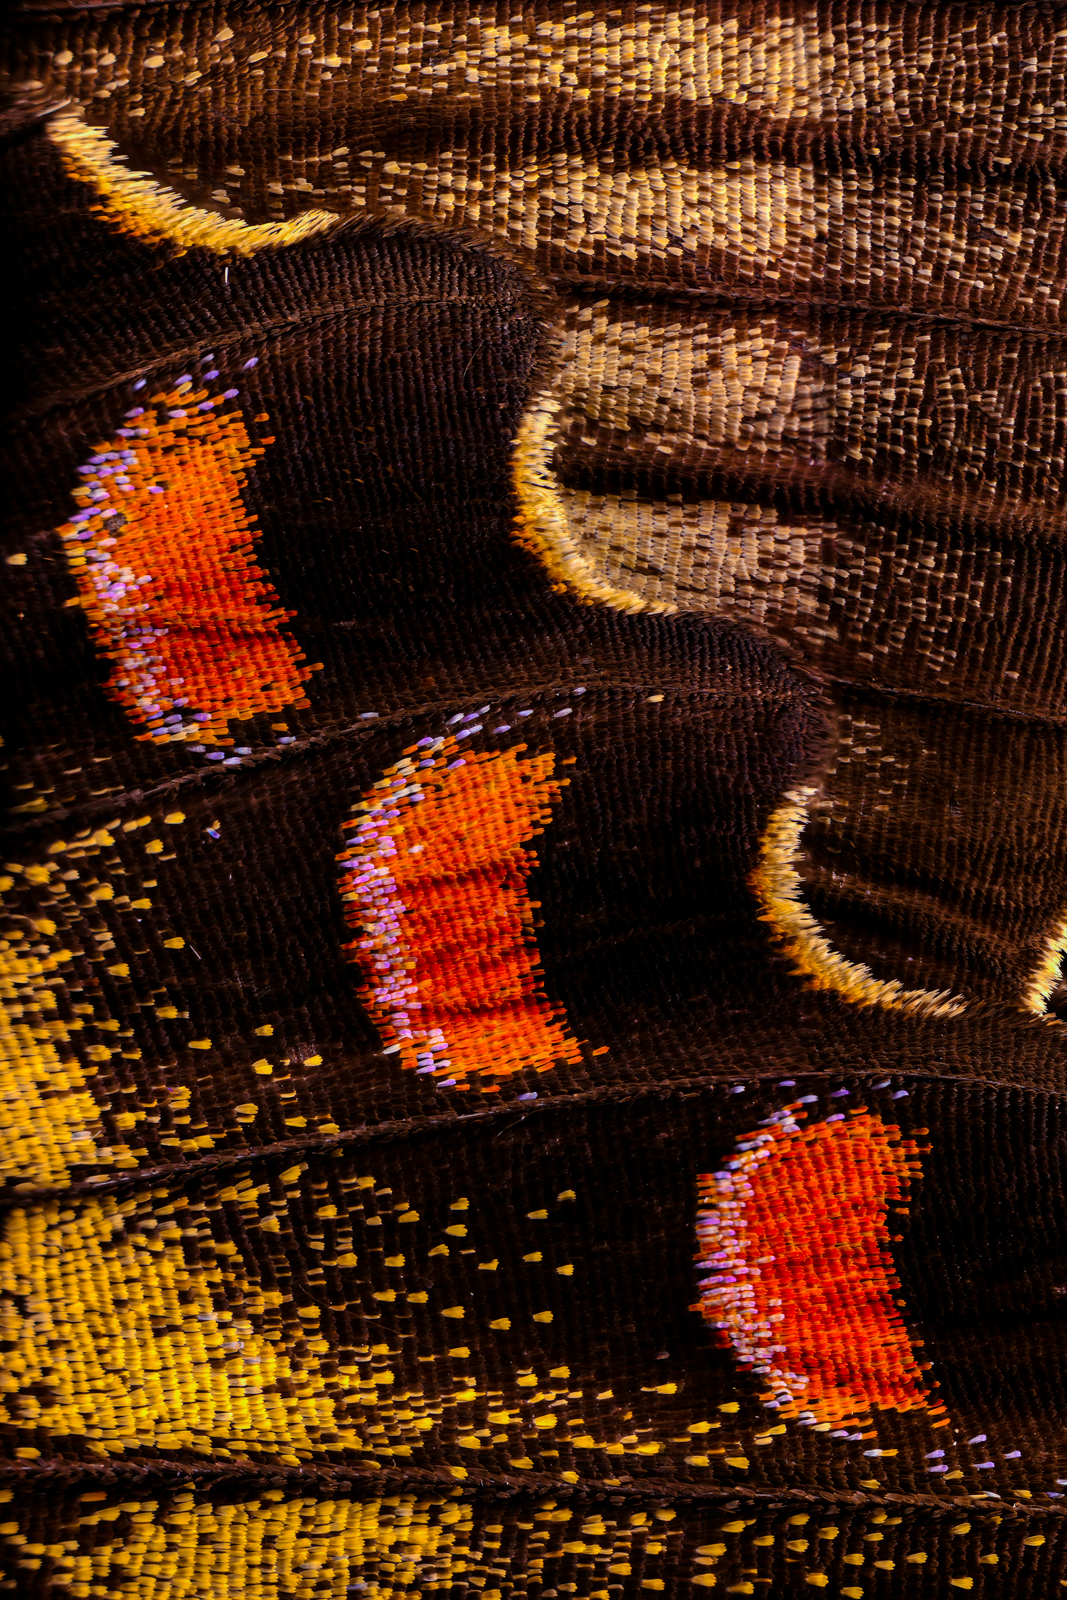 Macro photo of butterfly wing 24 2 full butterfly Wonderful Macro Photography of Butterflies Wing by Chris Perani